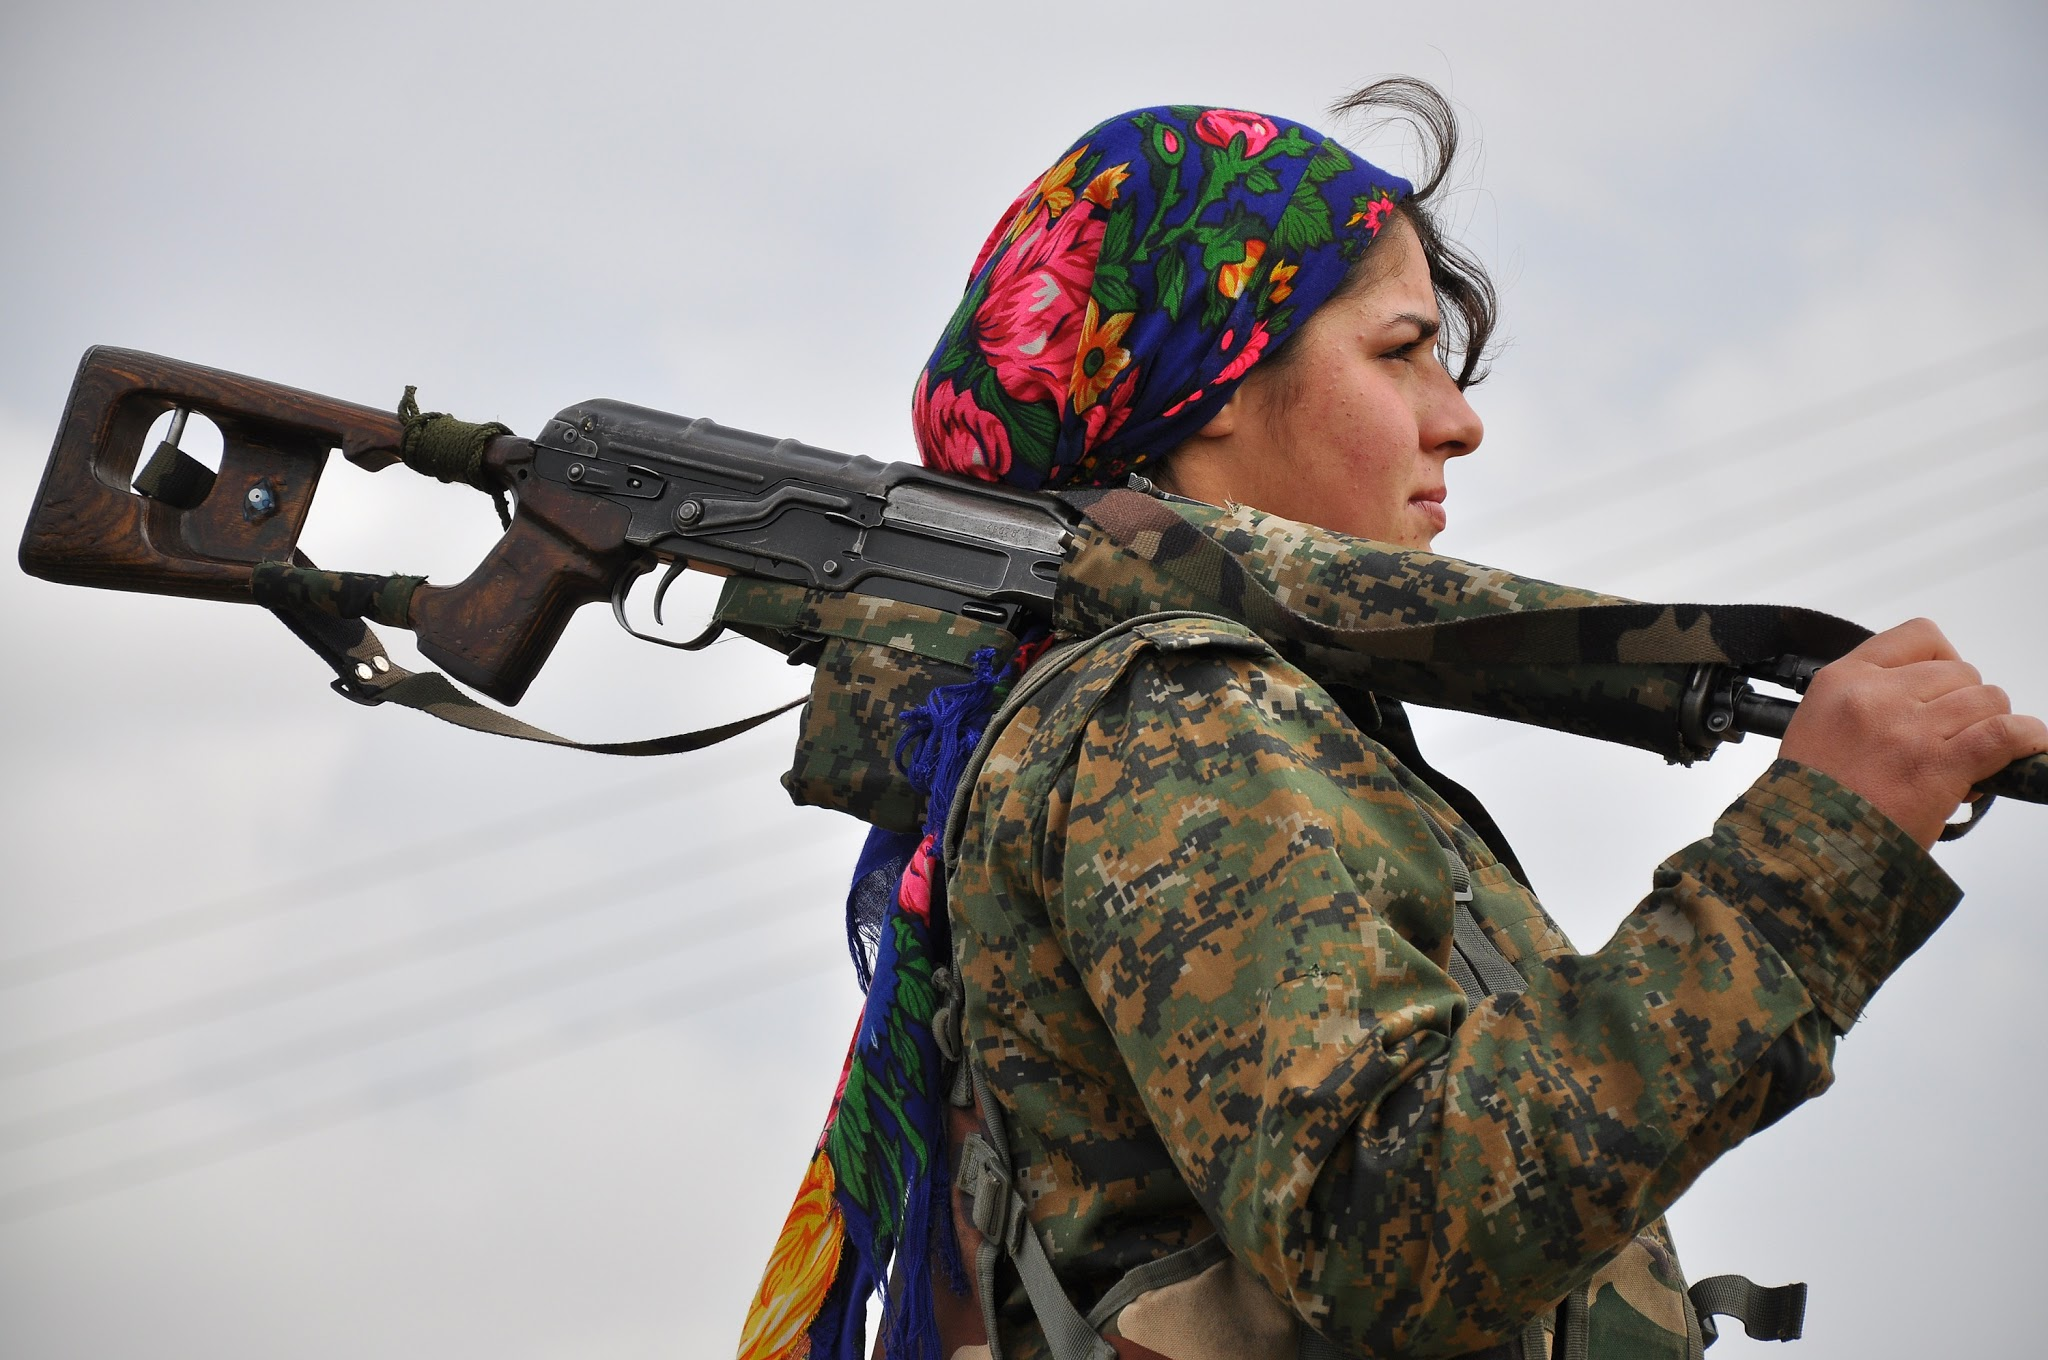 A Kurdish female fighter of the Women's Protection Units looks on at a training camp in al-Qahtaniyah, near the Syrian-Turkish border on Feb. 13. Syrian Kurdish forces have been fighting advances by the Islamic State jihadist group. / Delil Souleiman, AFP